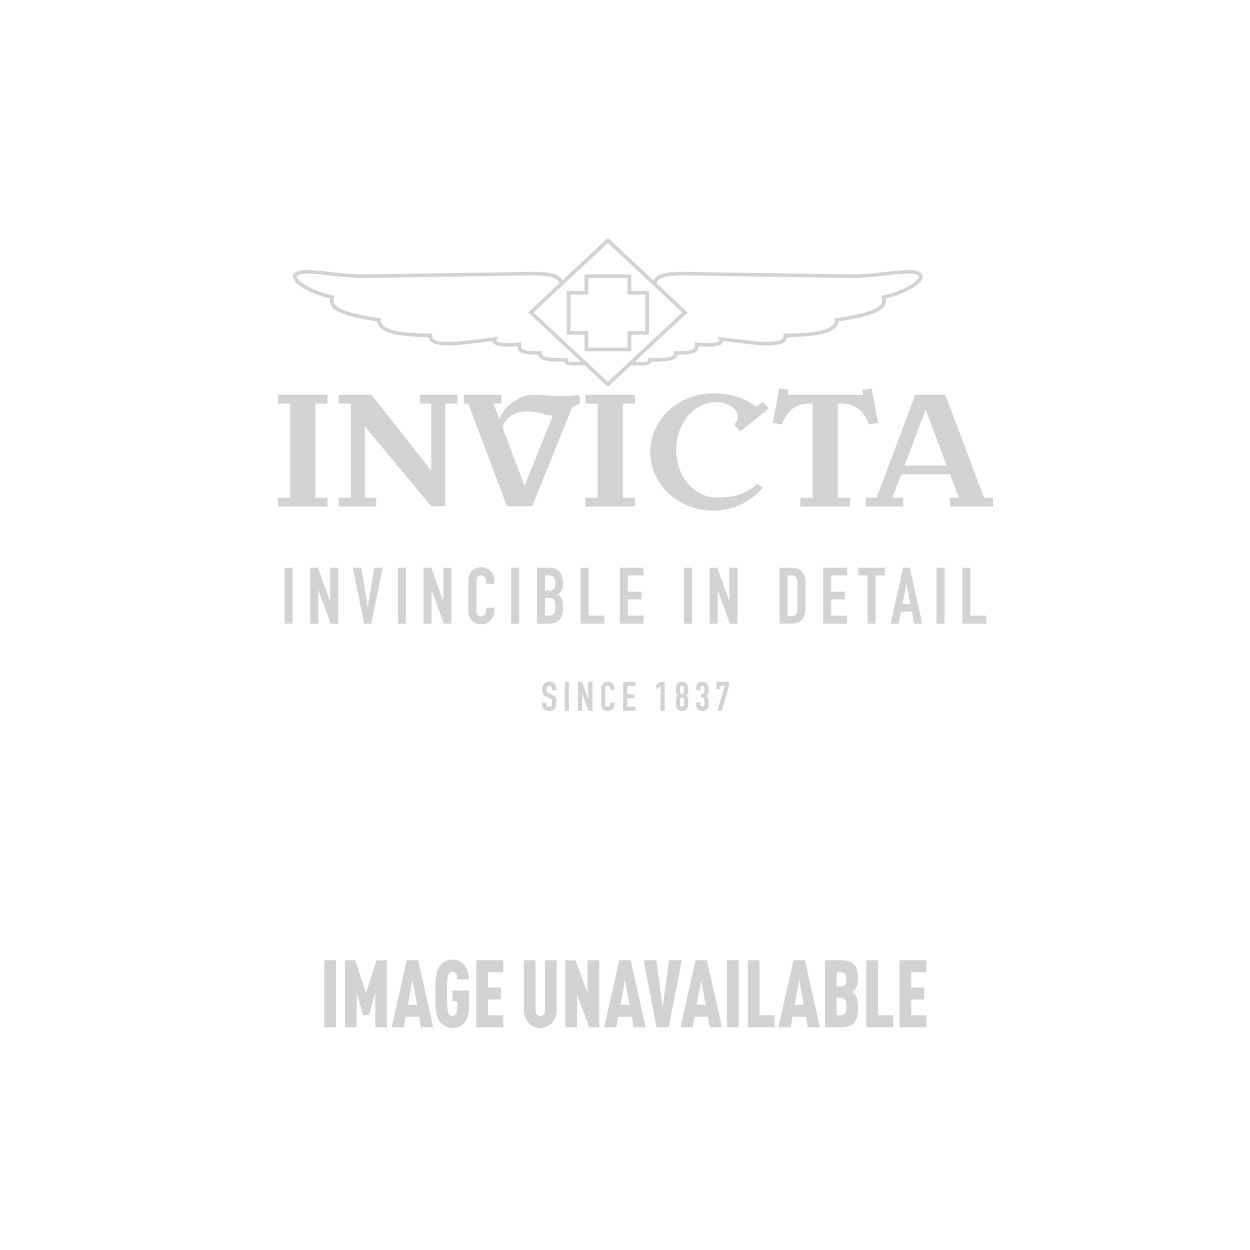 Invicta Excursion Swiss Made Quartz Watch - Black, Stainless Steel case Stainless Steel band - Model 1881